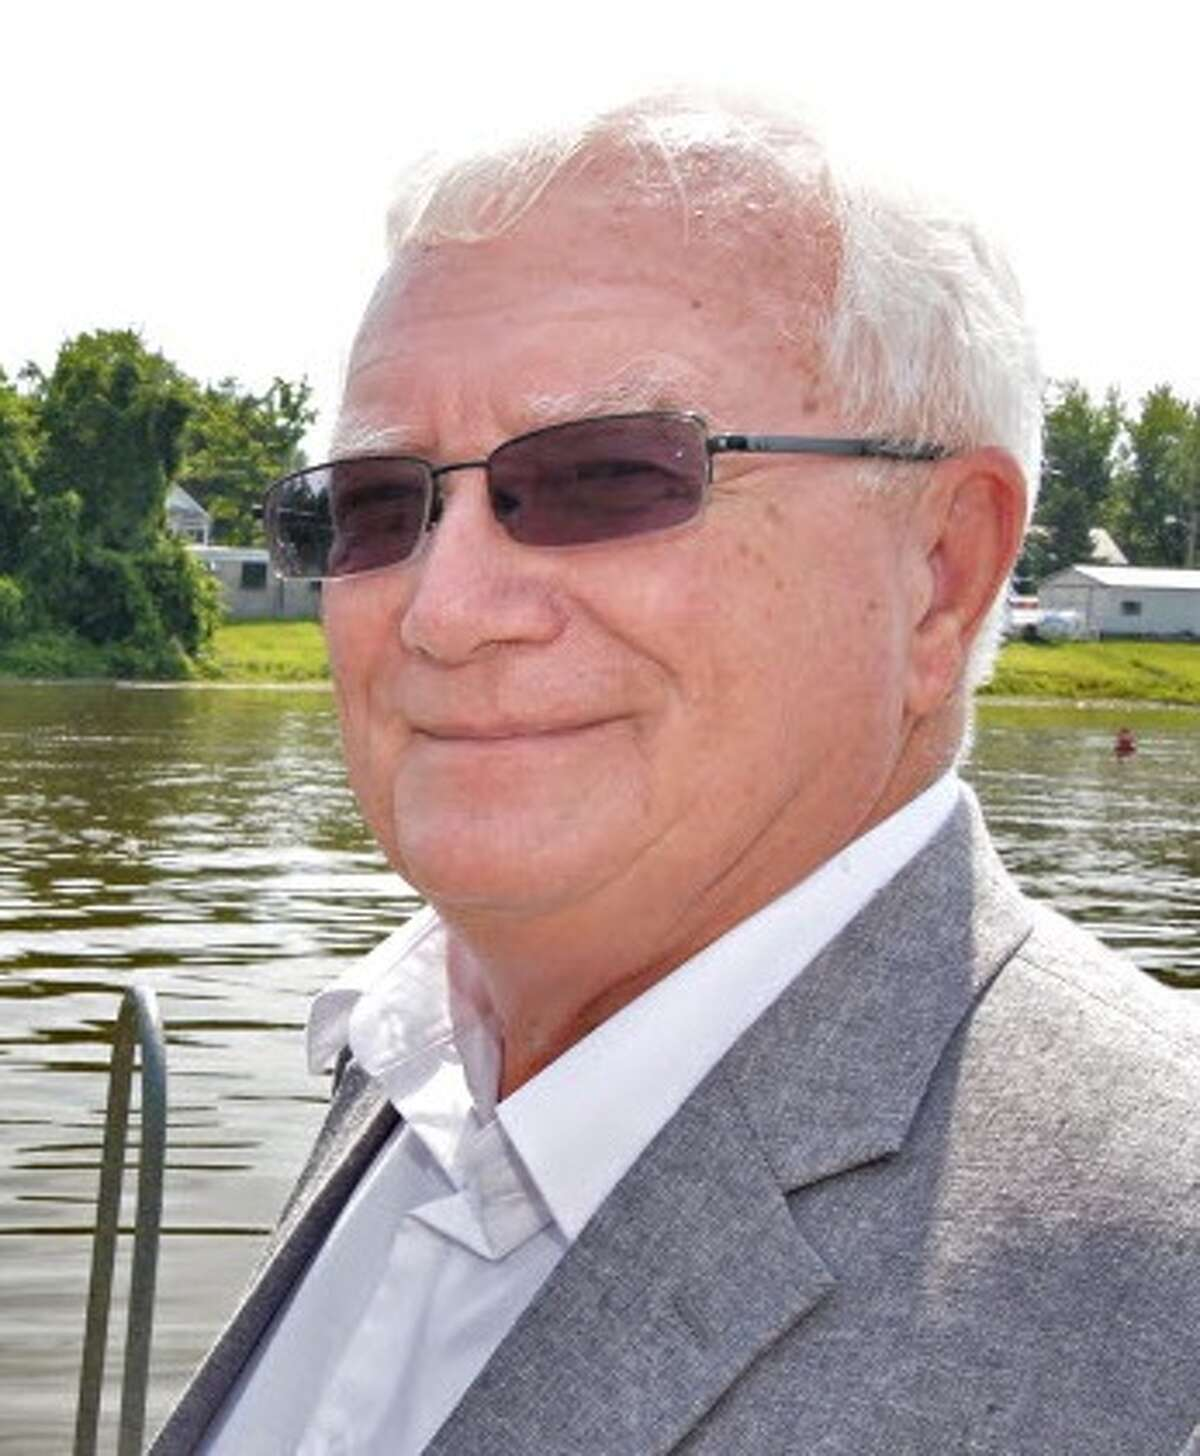 Mechanicville Mayor Dennis Baker will come to an agreement with the police department whose members filed a five-page complaint against the mayor last January.